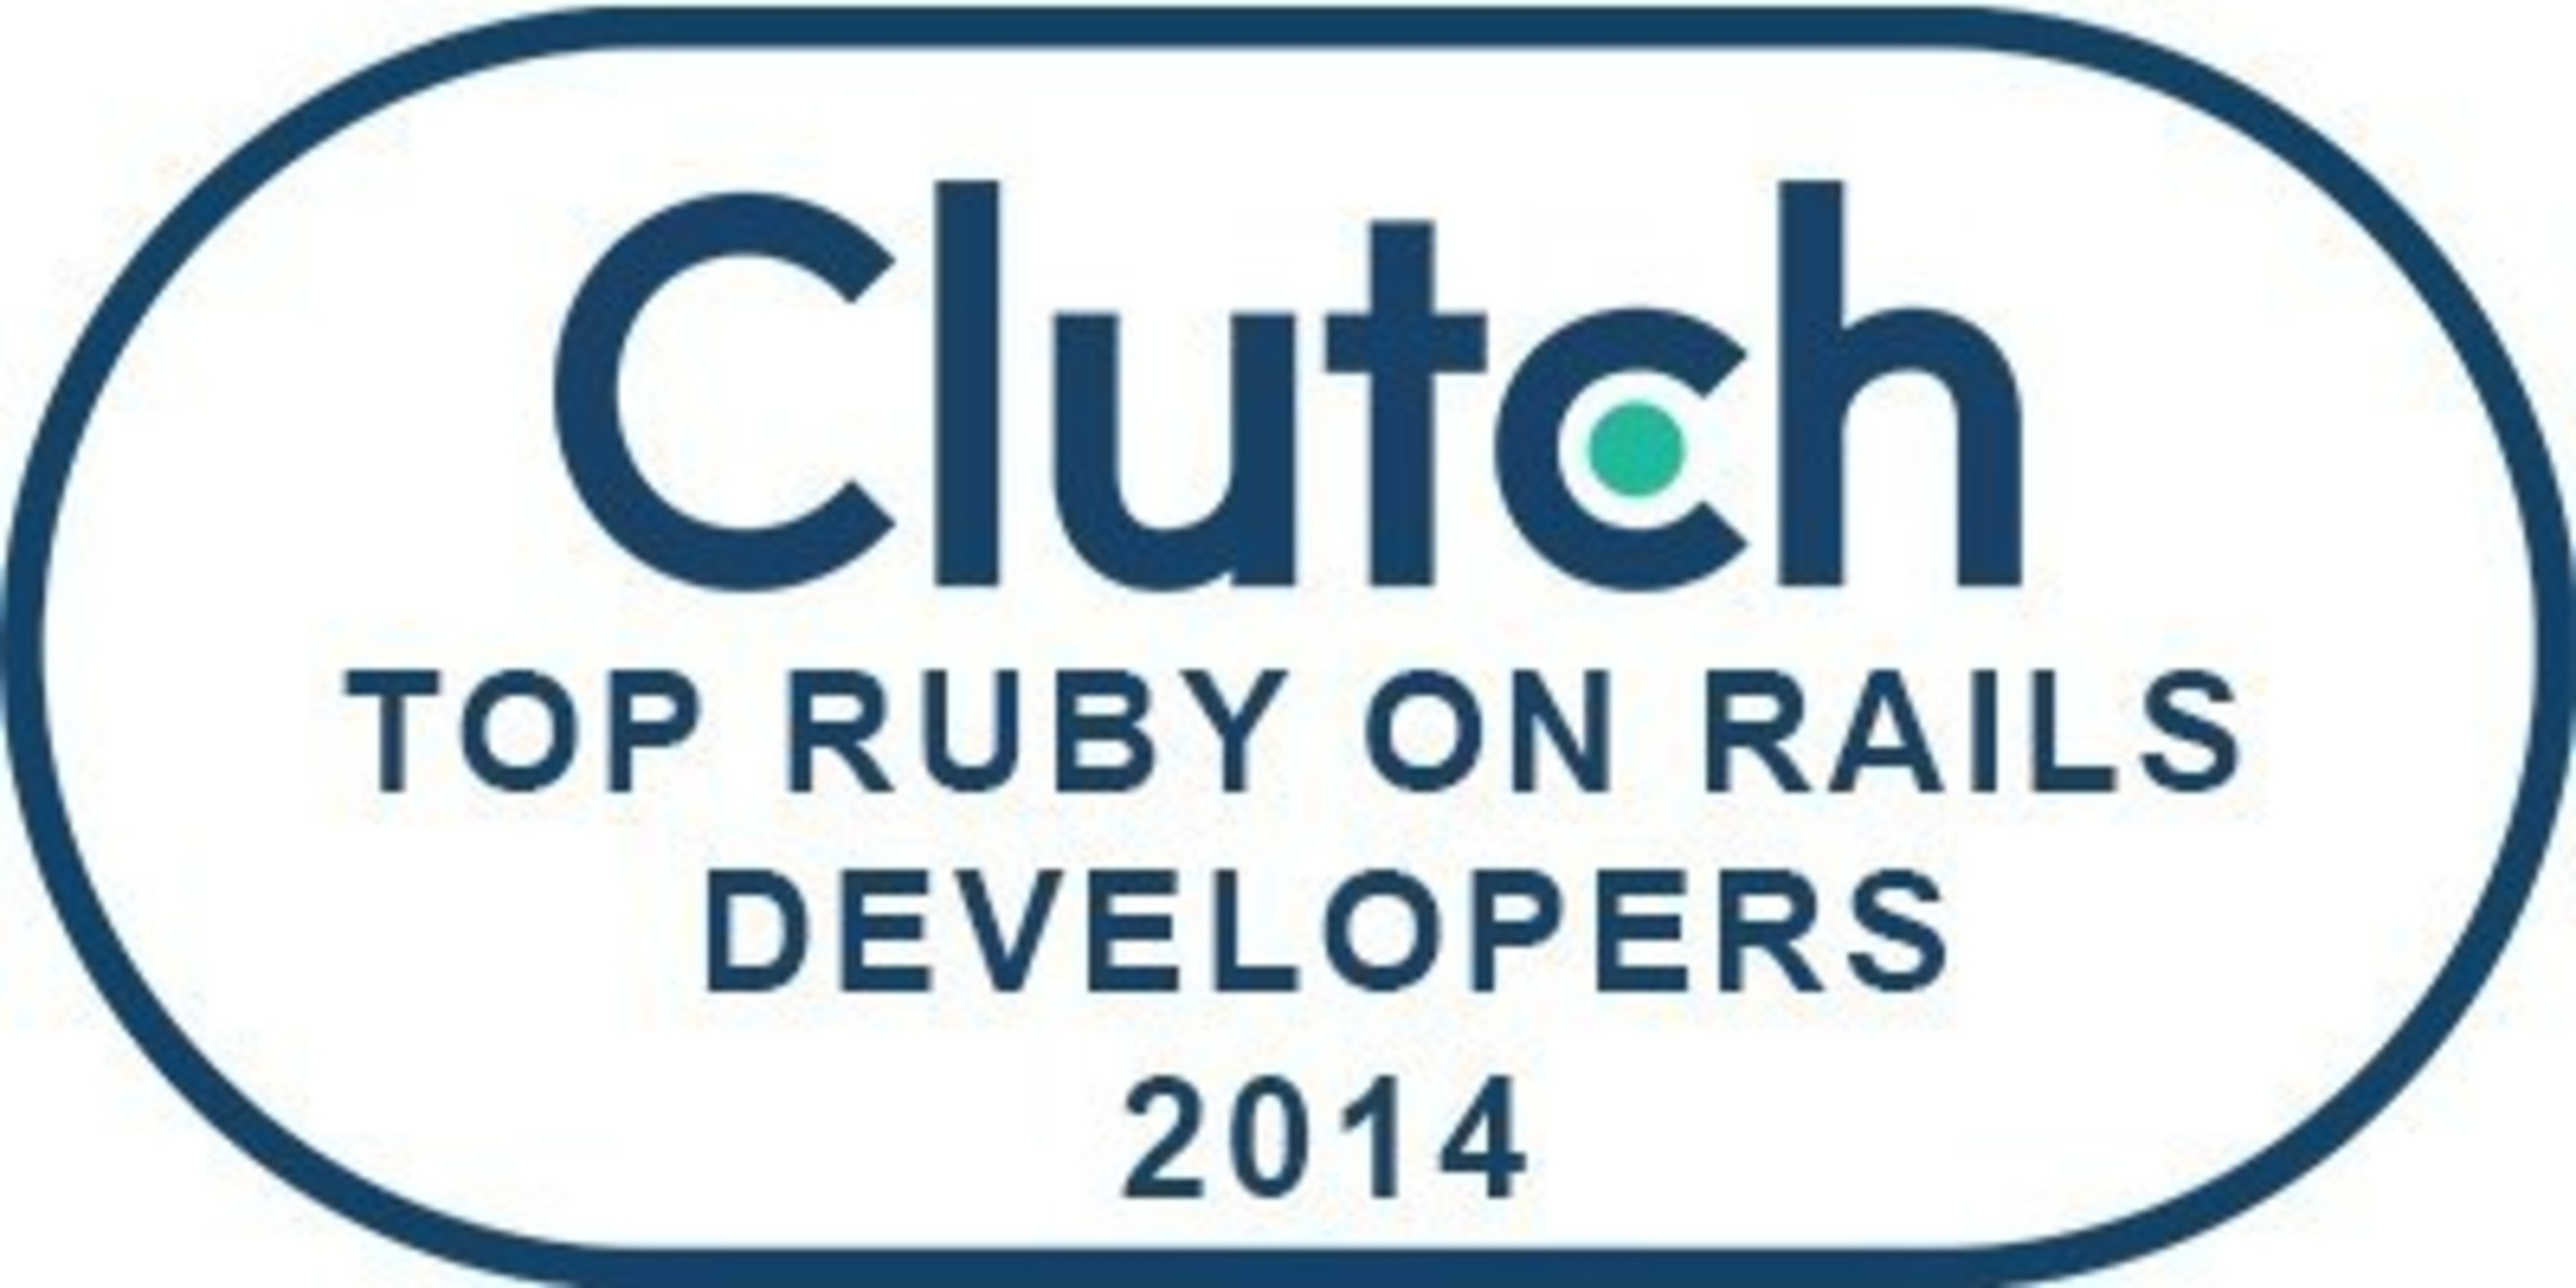 Research Firm Clutch Updates List of Top Ruby on Rails Developers